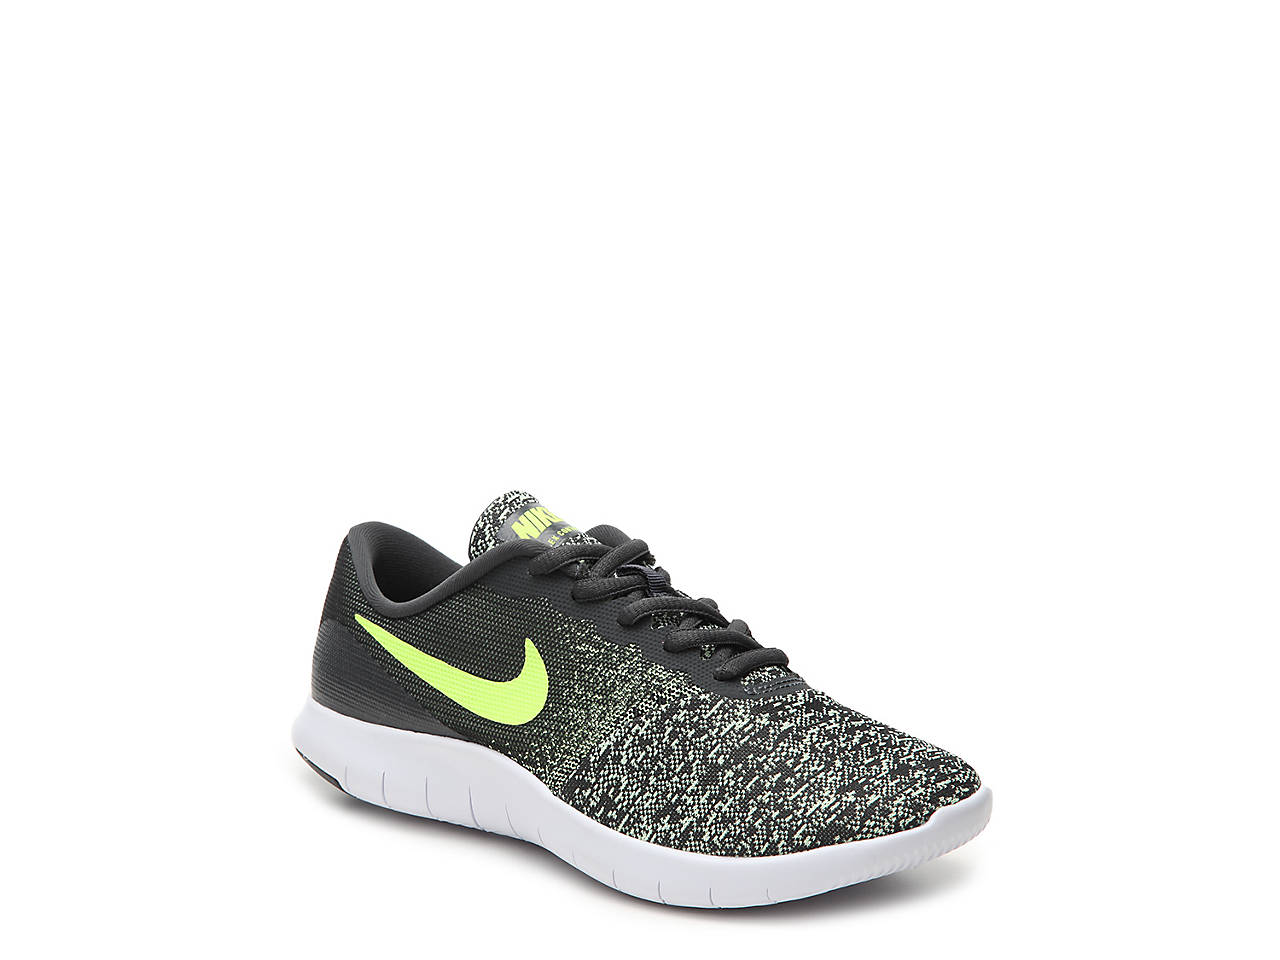 8e8fb8483ac Nike Flex Contact Youth Running Shoe Kids Shoes